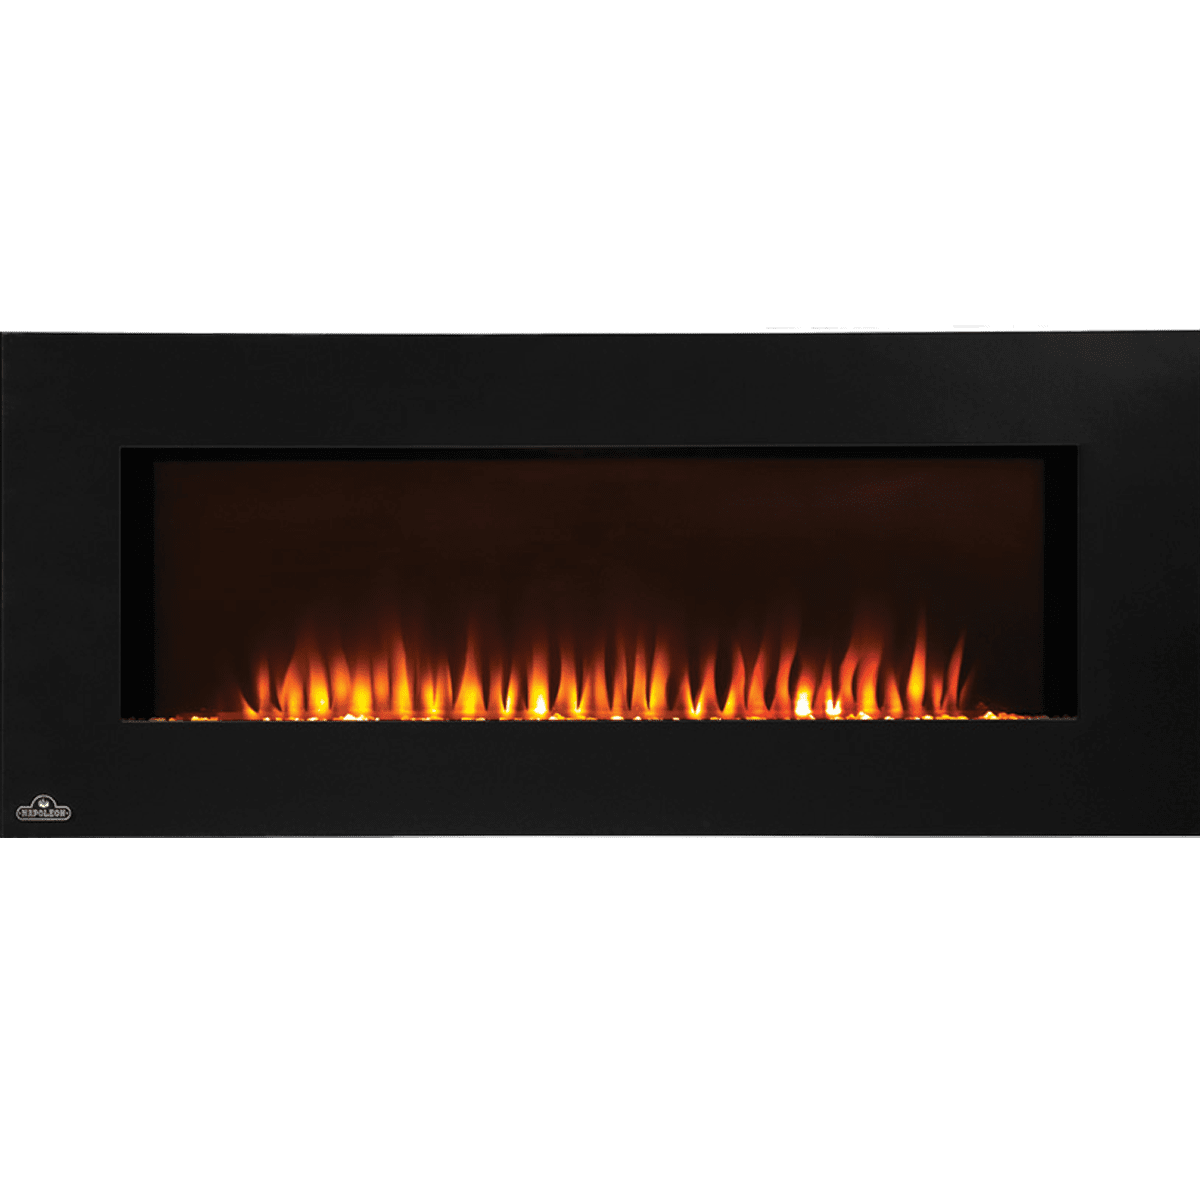 transcendence electric by wall classic fireplace mounted hanging flame